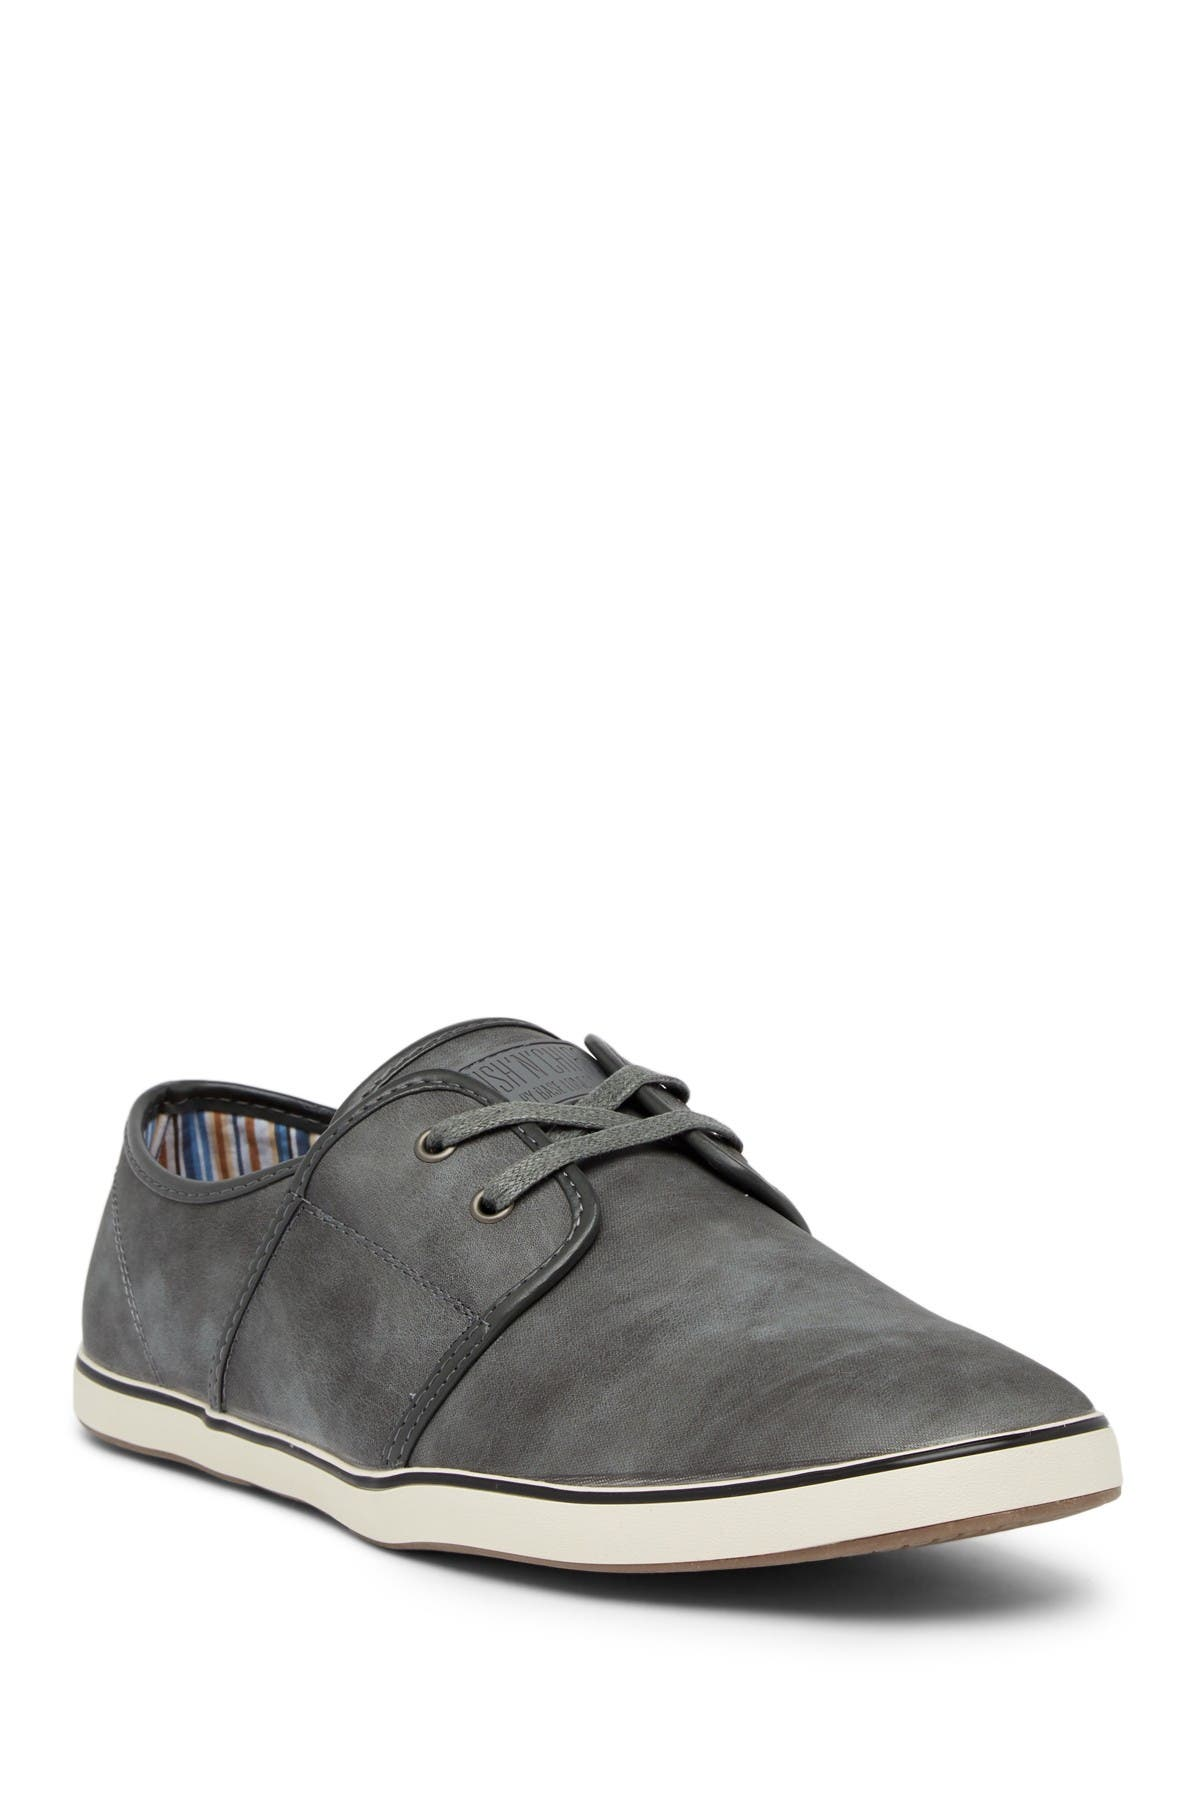 Image of FISH N CHIPS London Solid Sneaker